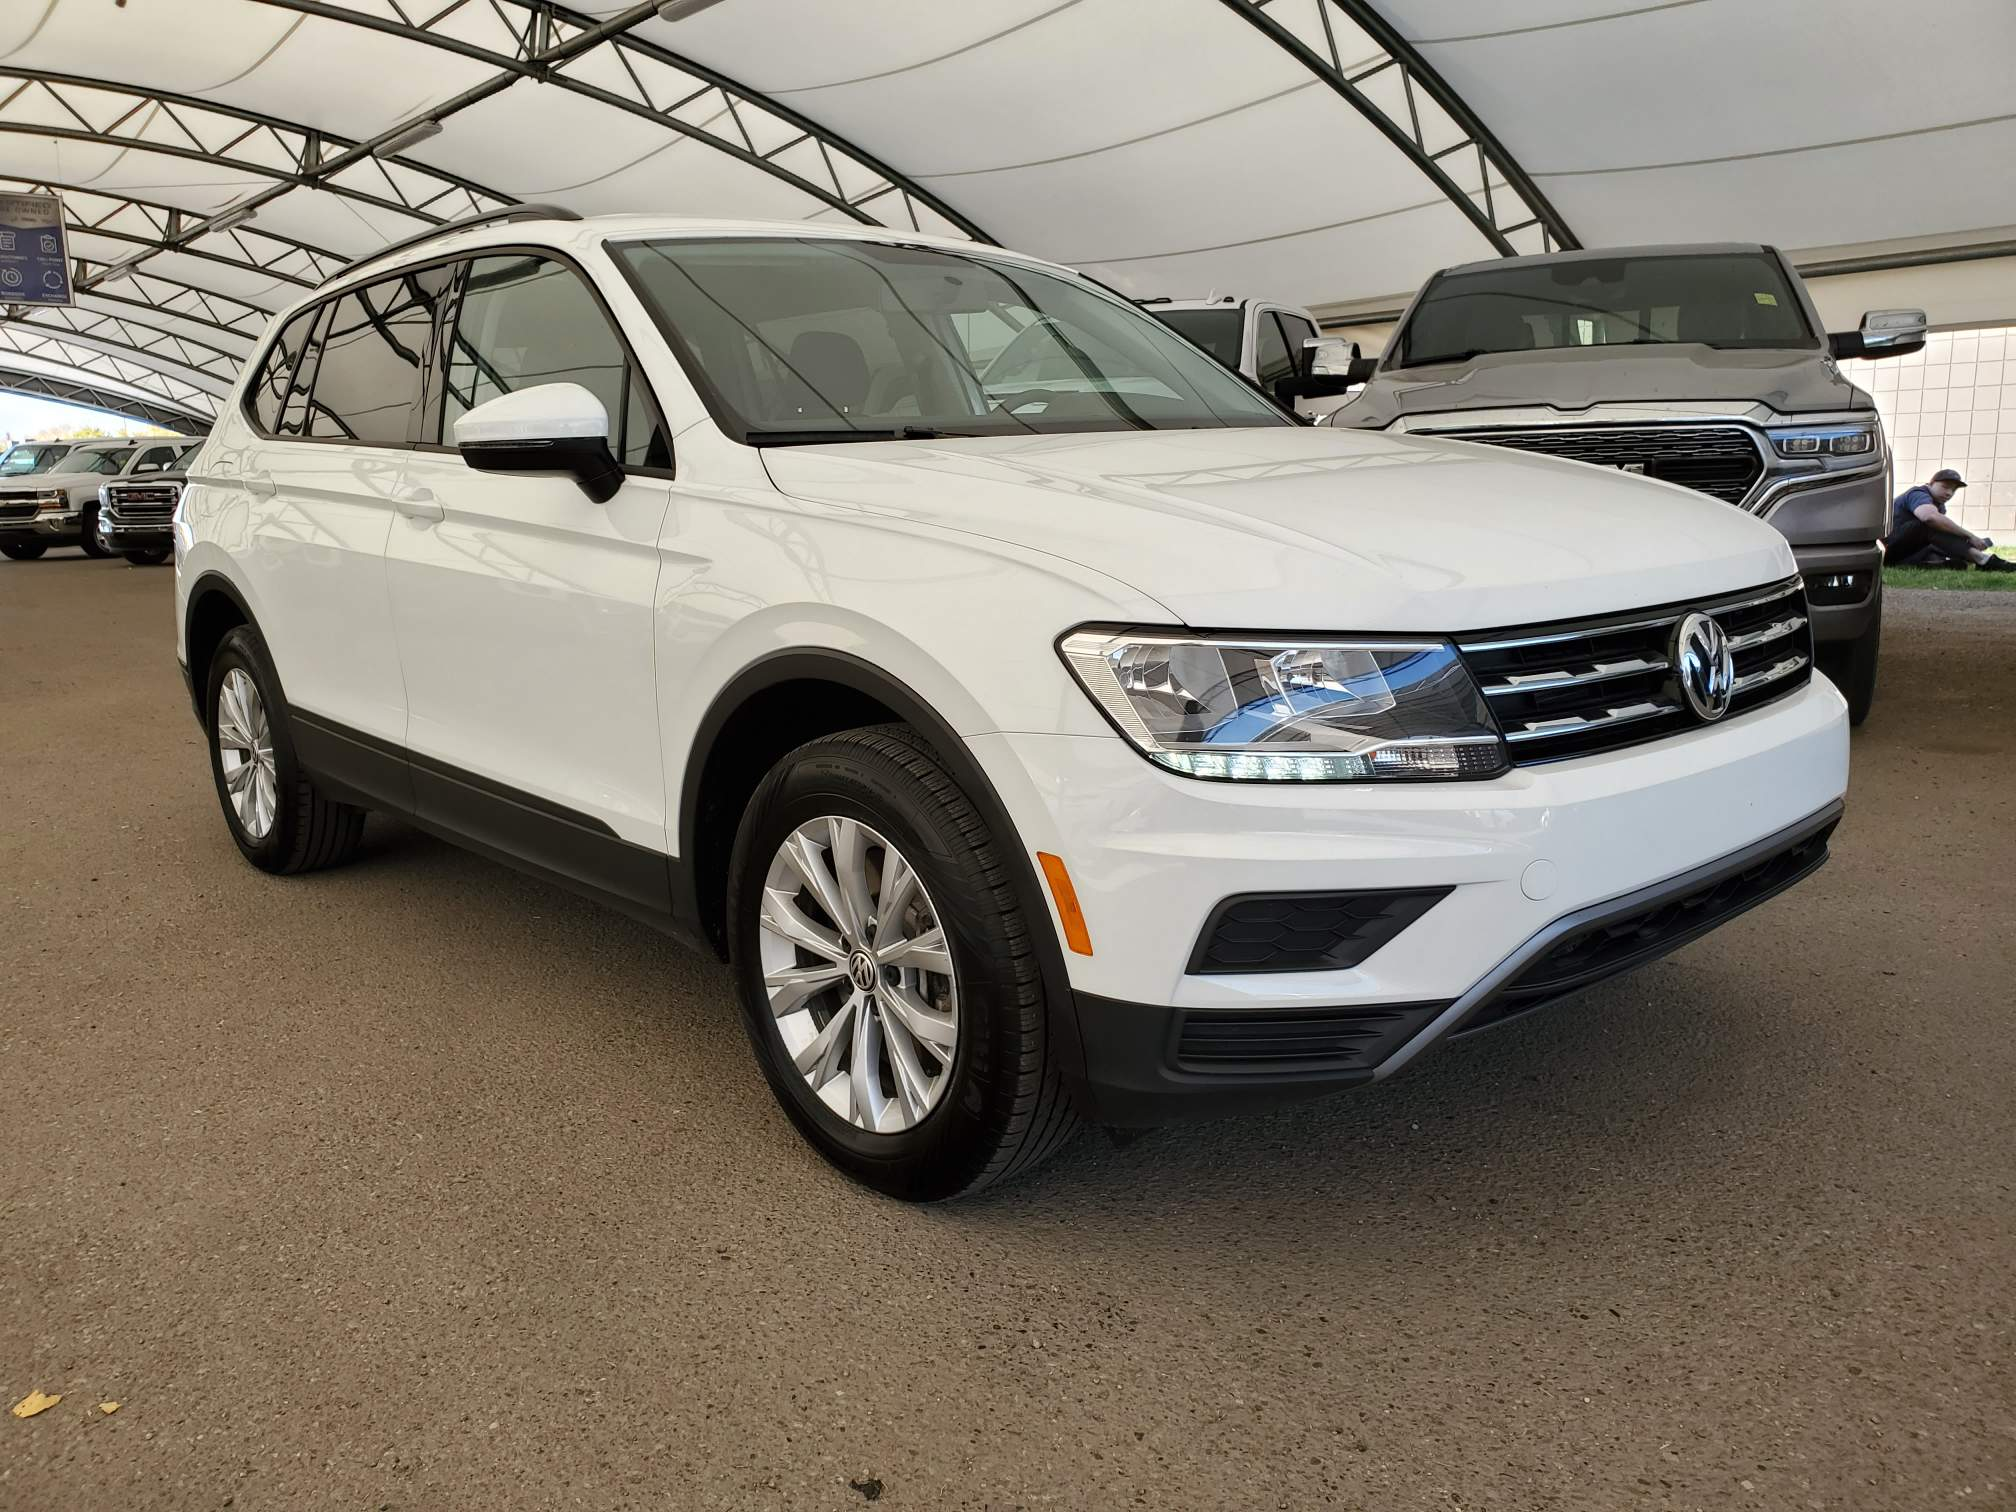 used 2019 Volkswagen Tiguan car, priced at $22,570